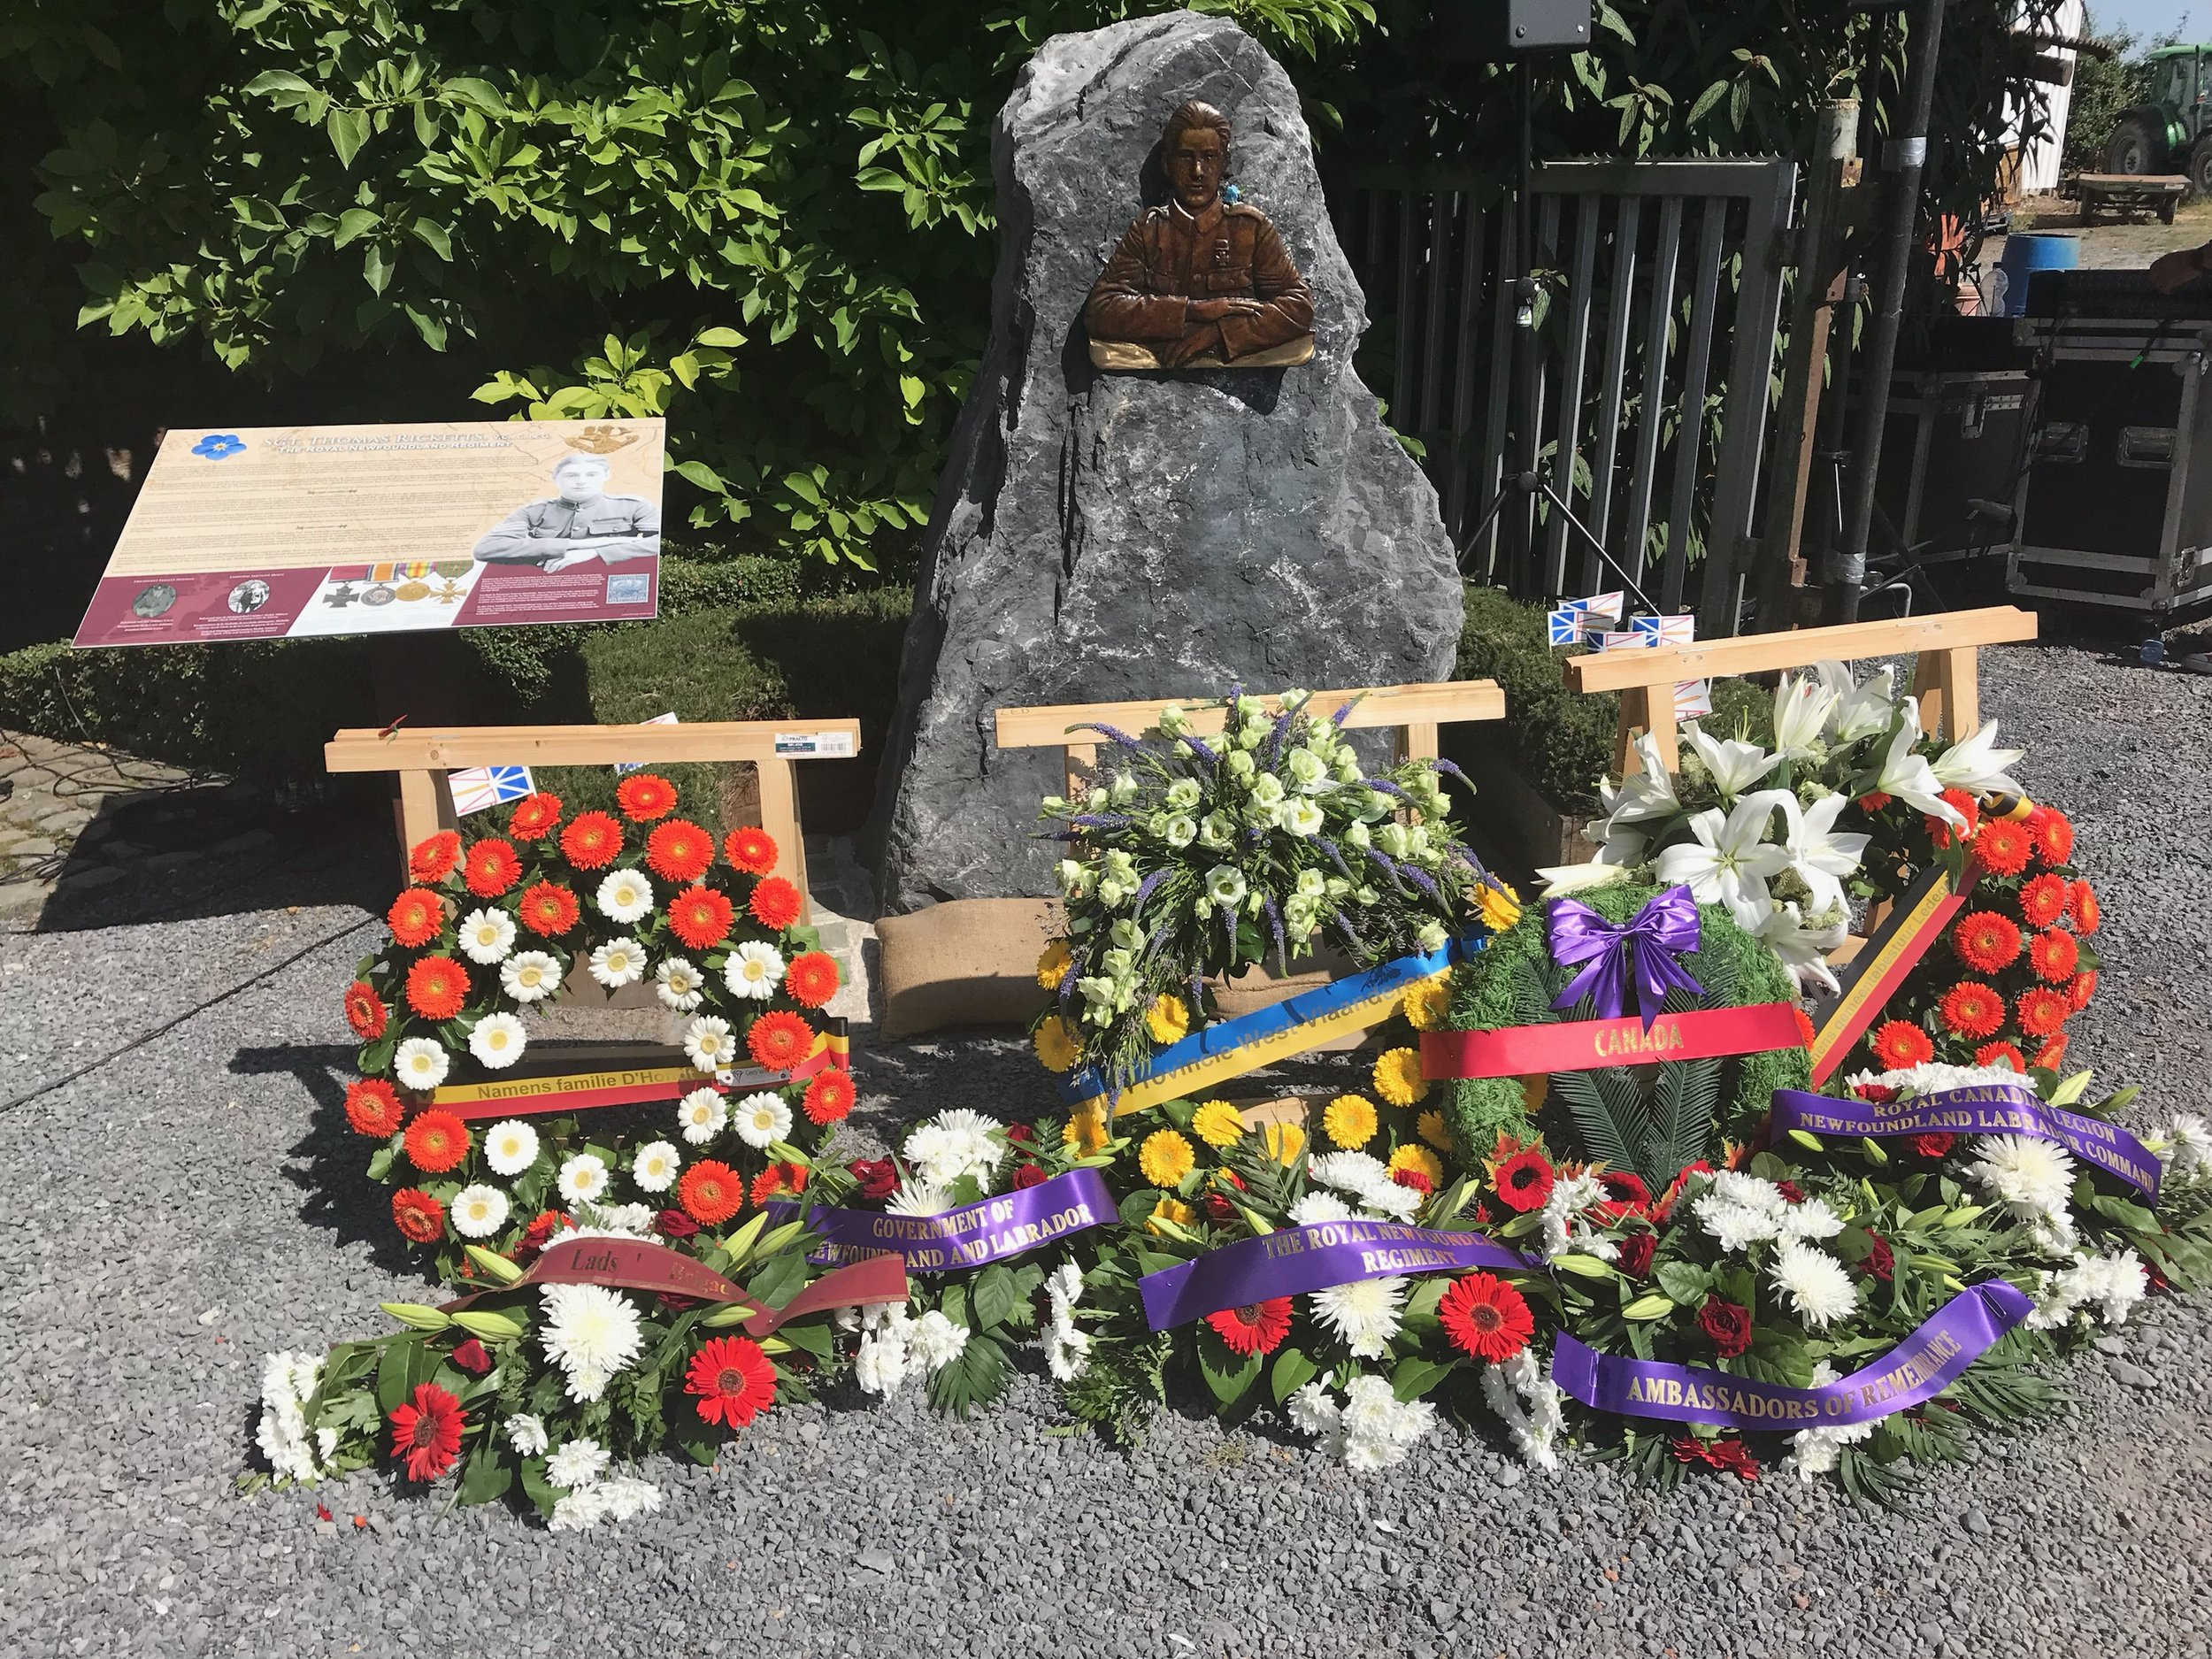 100 years after Tommy Ricketts fought at the Battle of Ledeghem a memorial dedicaded to him opened June 30th 2018.